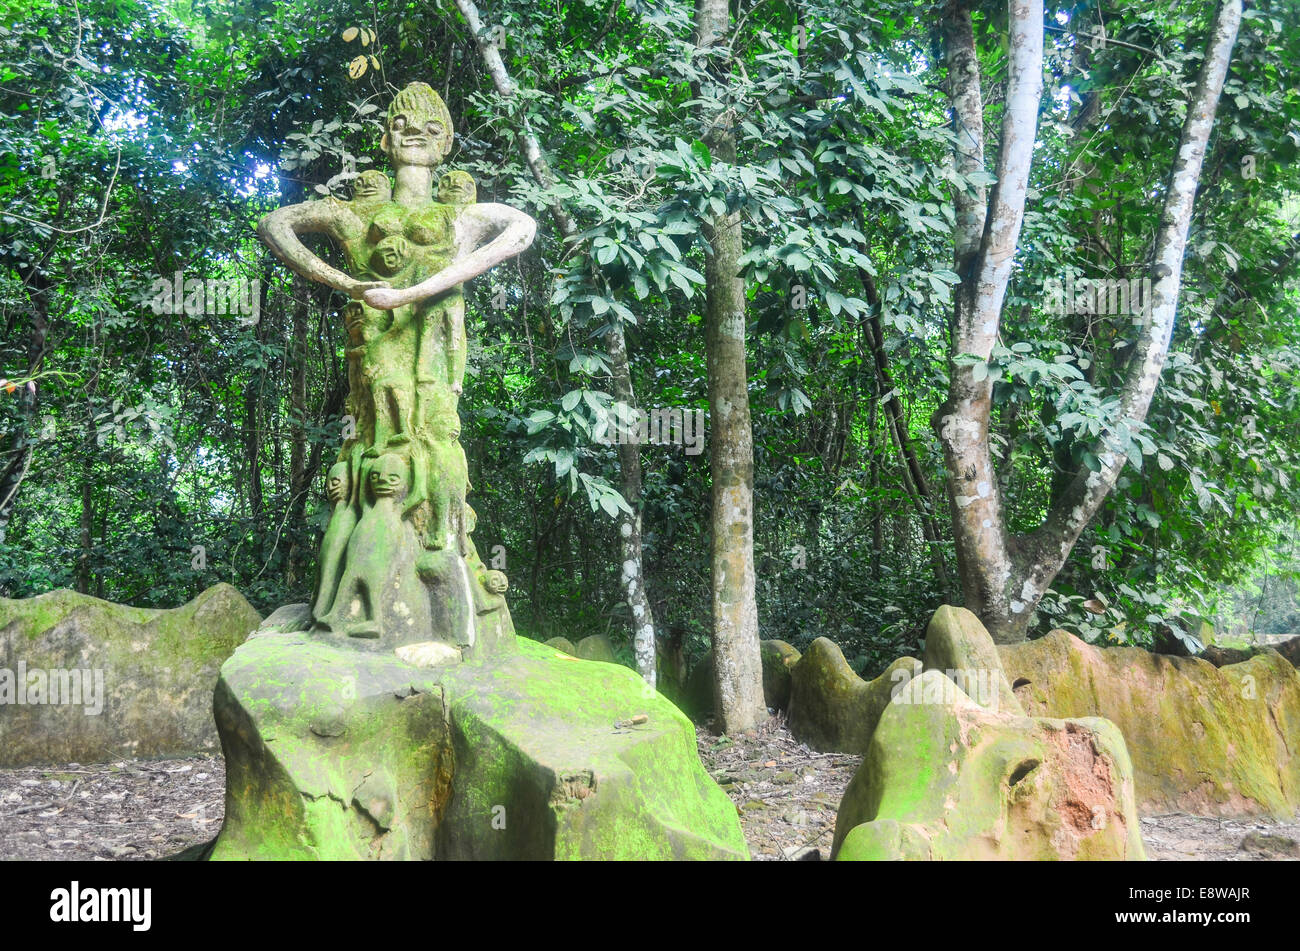 Sculptures in Osun Sacred Grove, UNESCO site in Oshogbo, Nigeria, dedicated to the Yoruba goddess of fertility - Stock Image